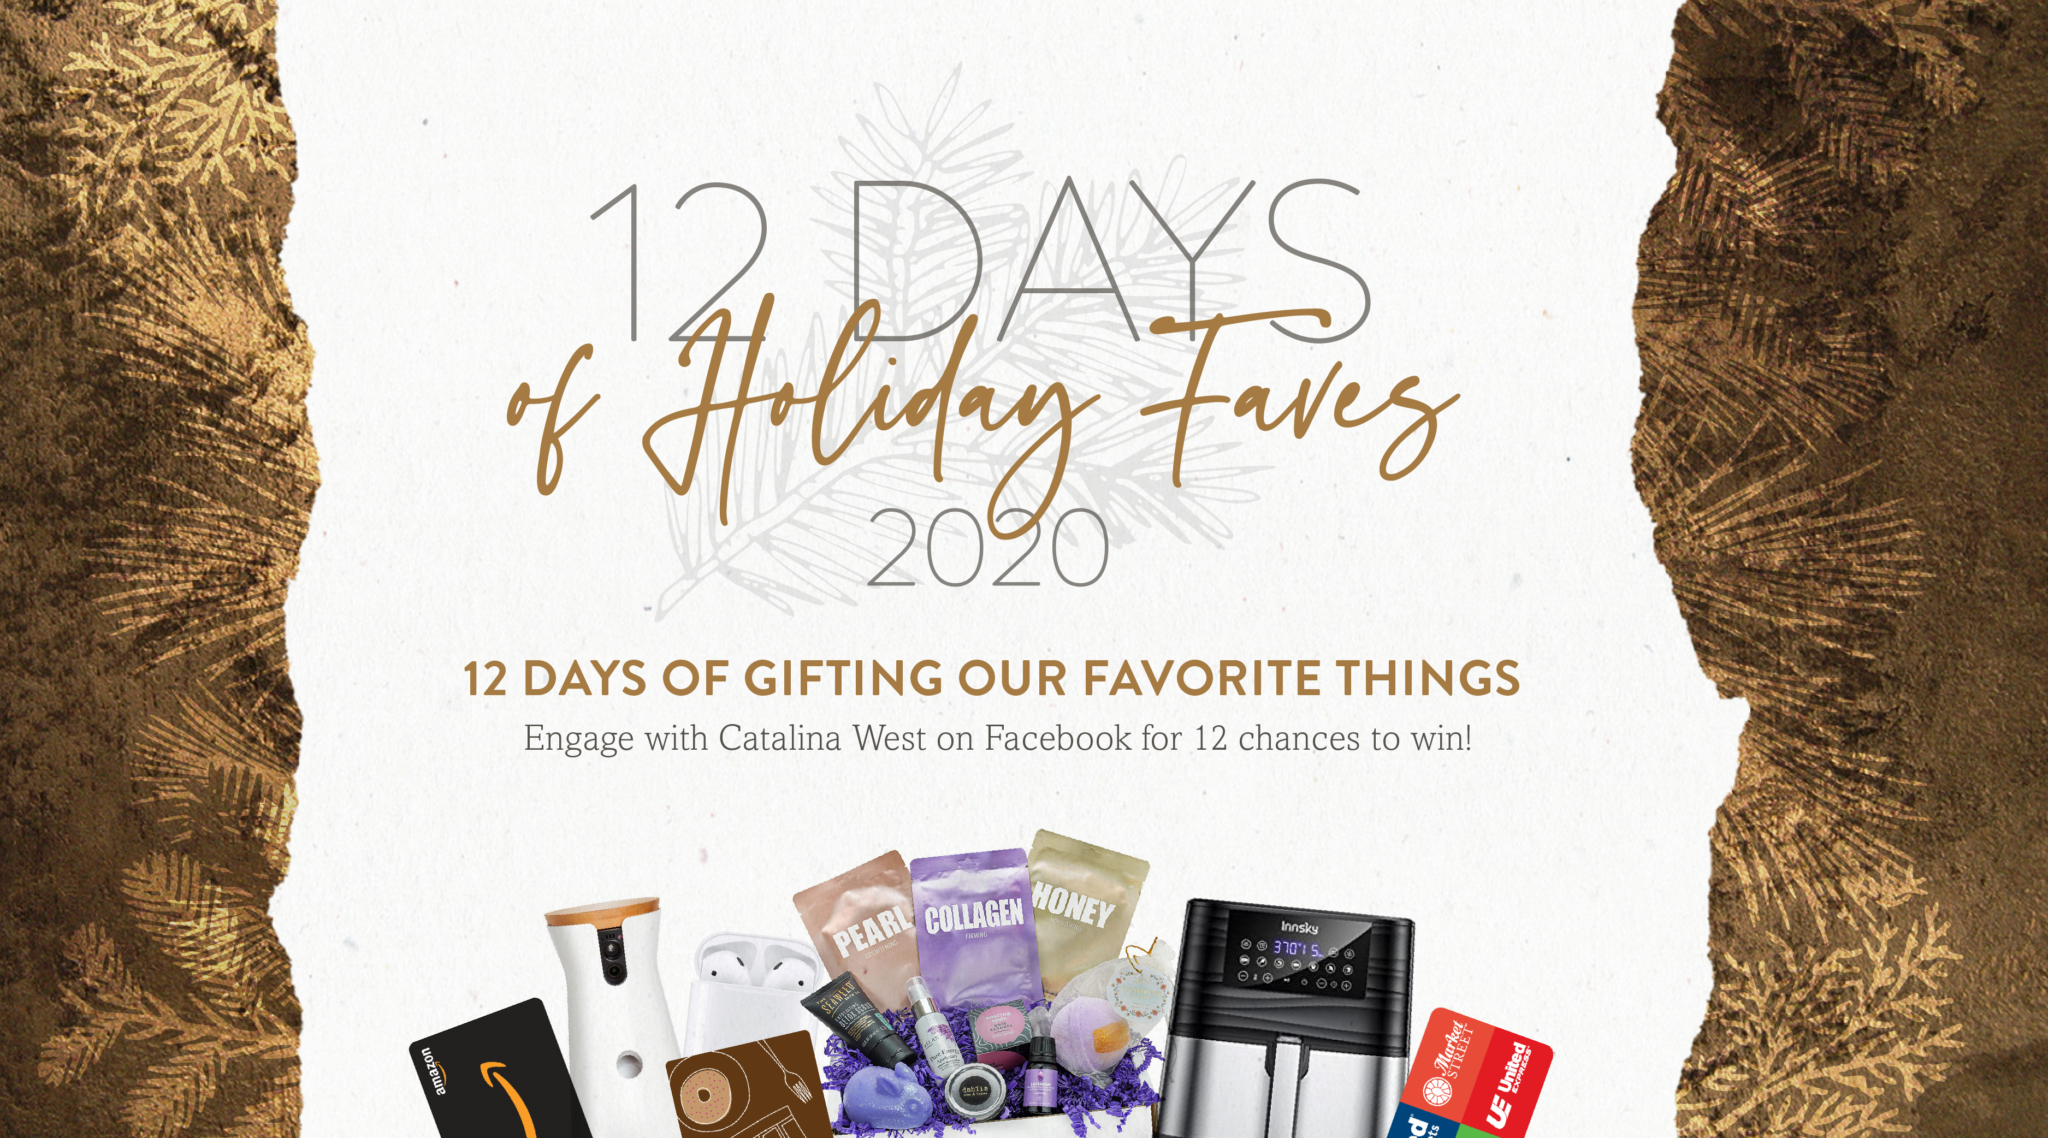 12 Days of Holiday Faves